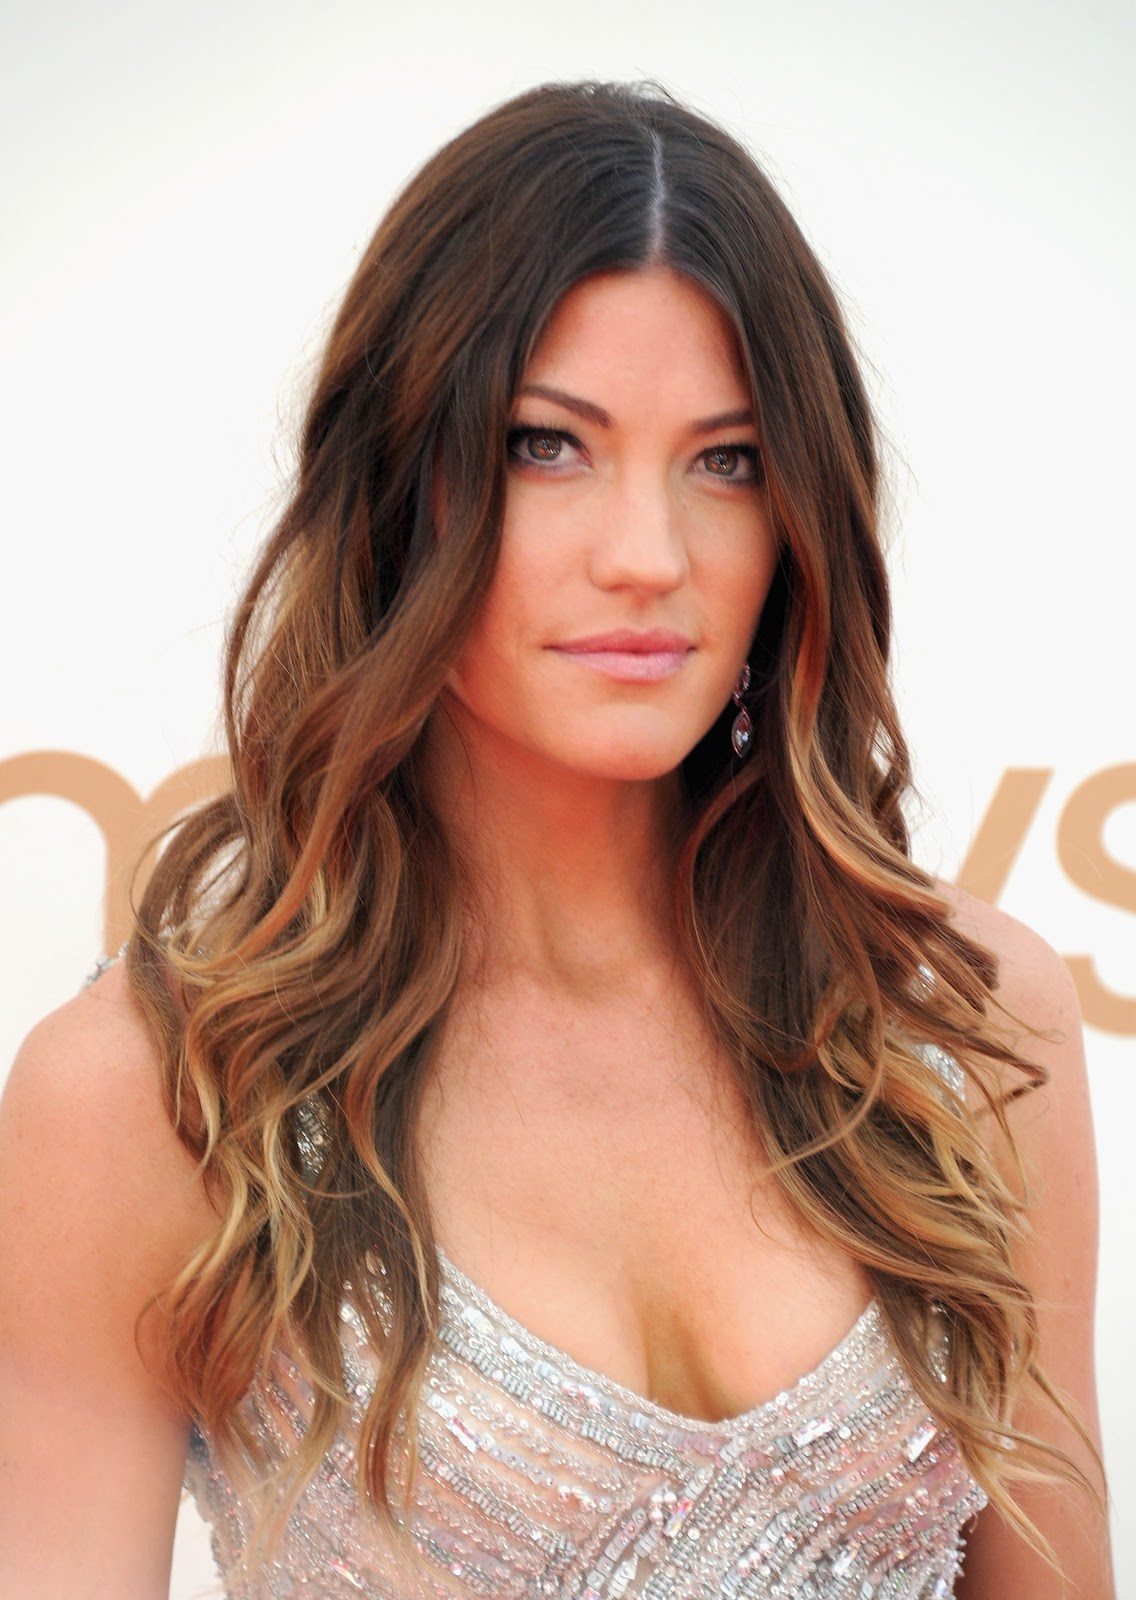 Jennifer Carpenter Body http://all-about-celebrty.blogspot.com/2013/01/jennifer-carpenter-bra-size-and.html